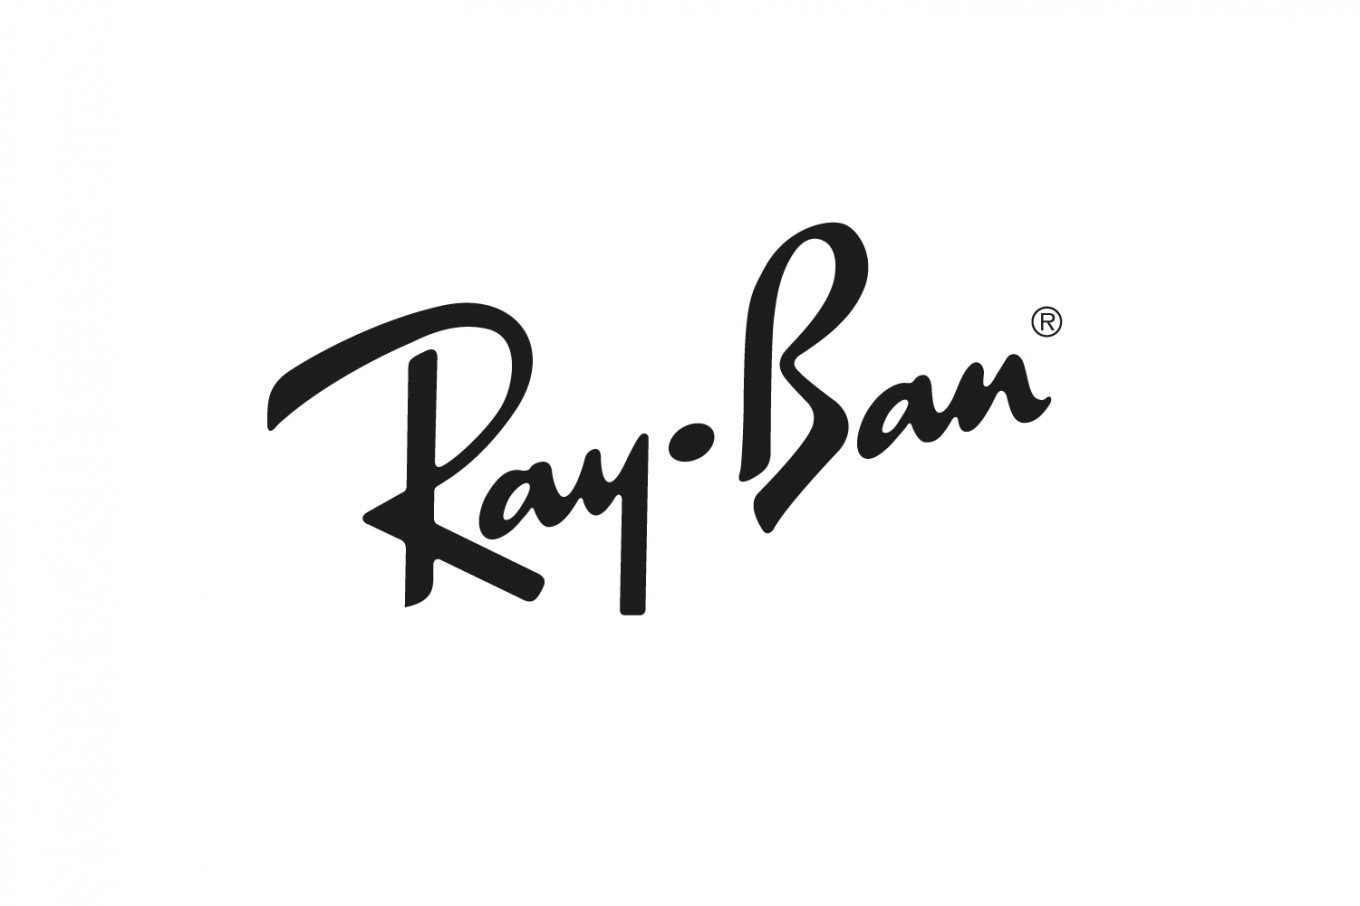 Ray Ban Wallpaper Hd Isefac Alternance